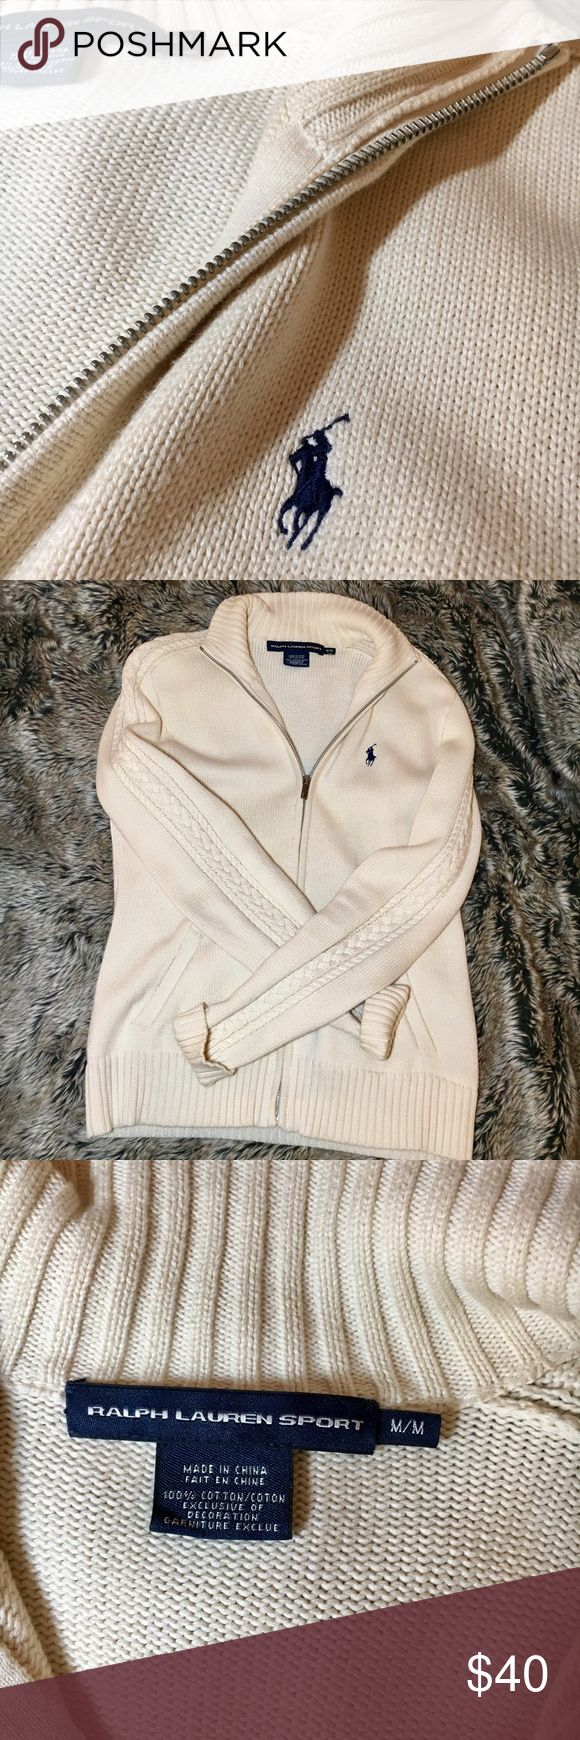 Ralph Lauren Sport Women's Zip-Up sweater Ralph Lauren Sport Women's Zip-Up sweater in a cream color. Size M. A little discoloration from jeans on the inside bottom but you can't see it when it's being worn :) Ralph Lauren Sweaters Cardigans